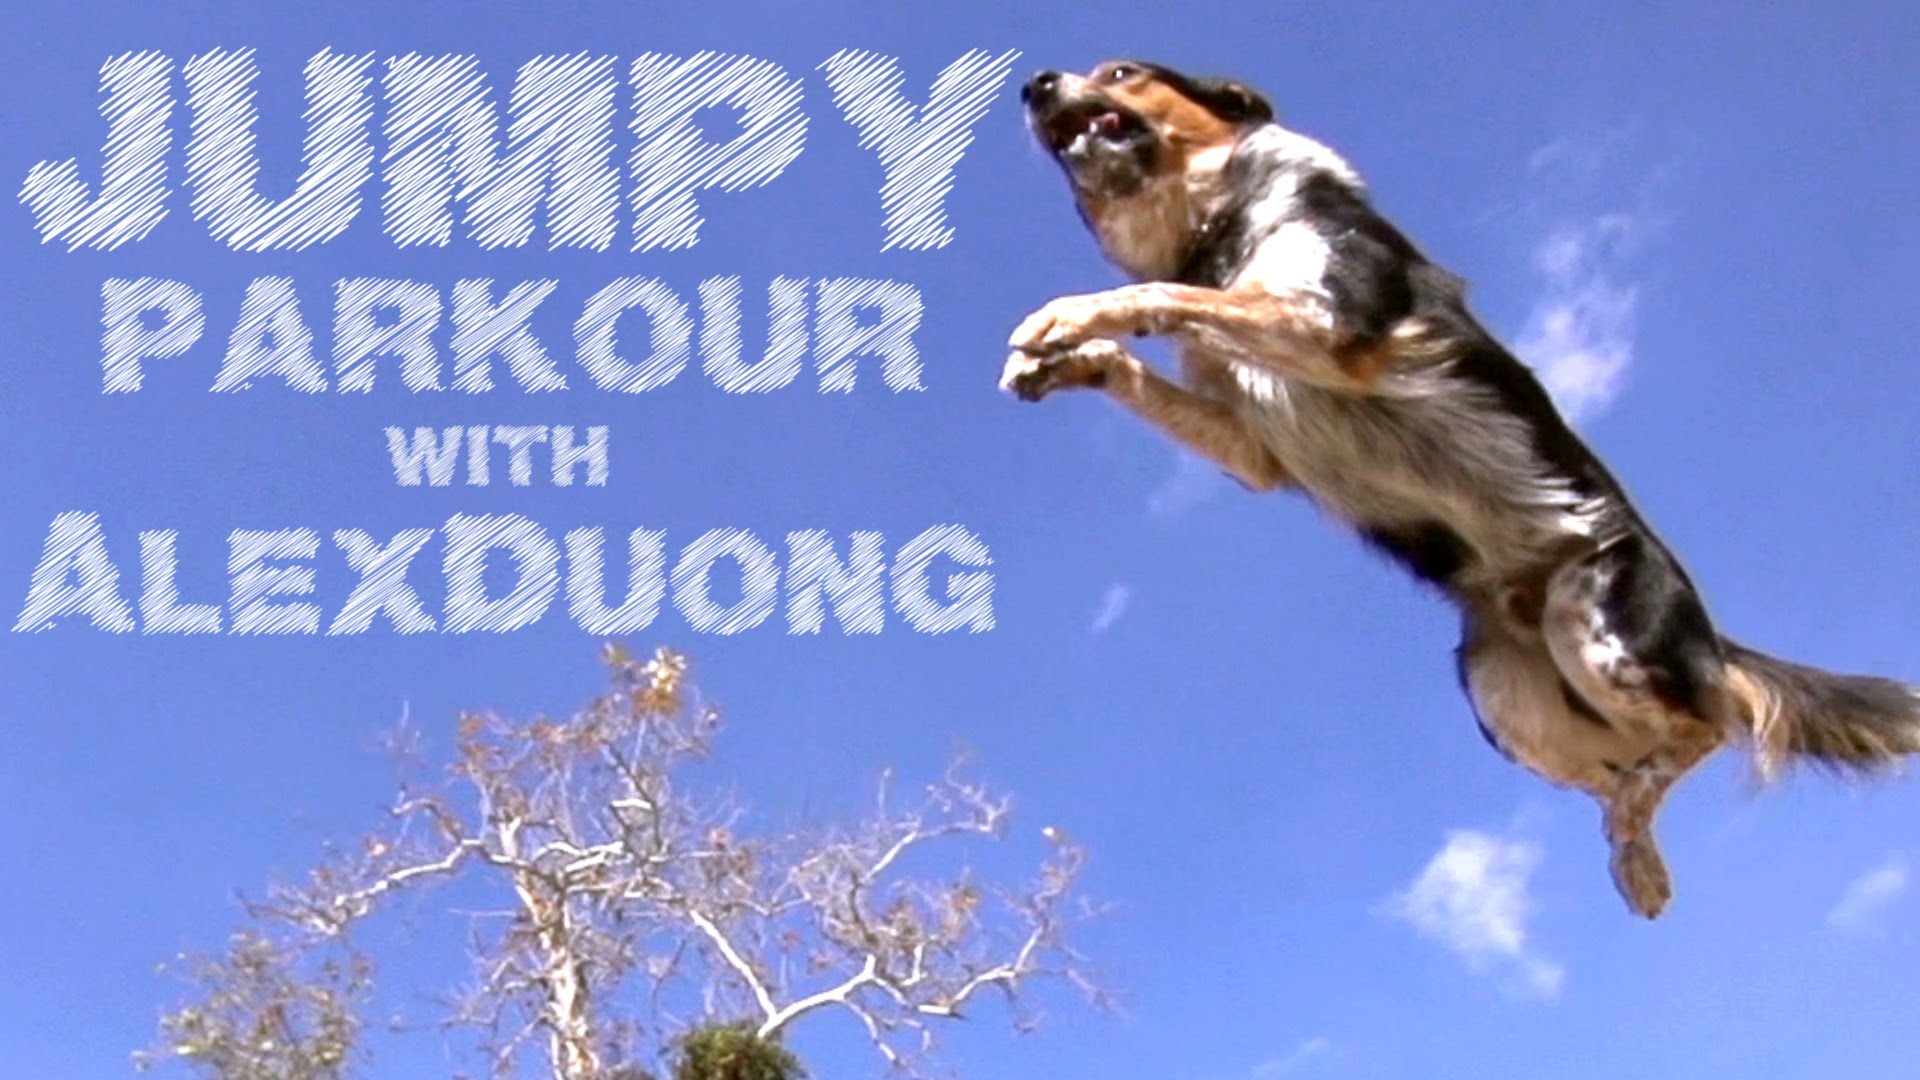 Parkour Dog Does Backflips, Walks On His Front Paws, And Other Incredible Acrobatics (Video)